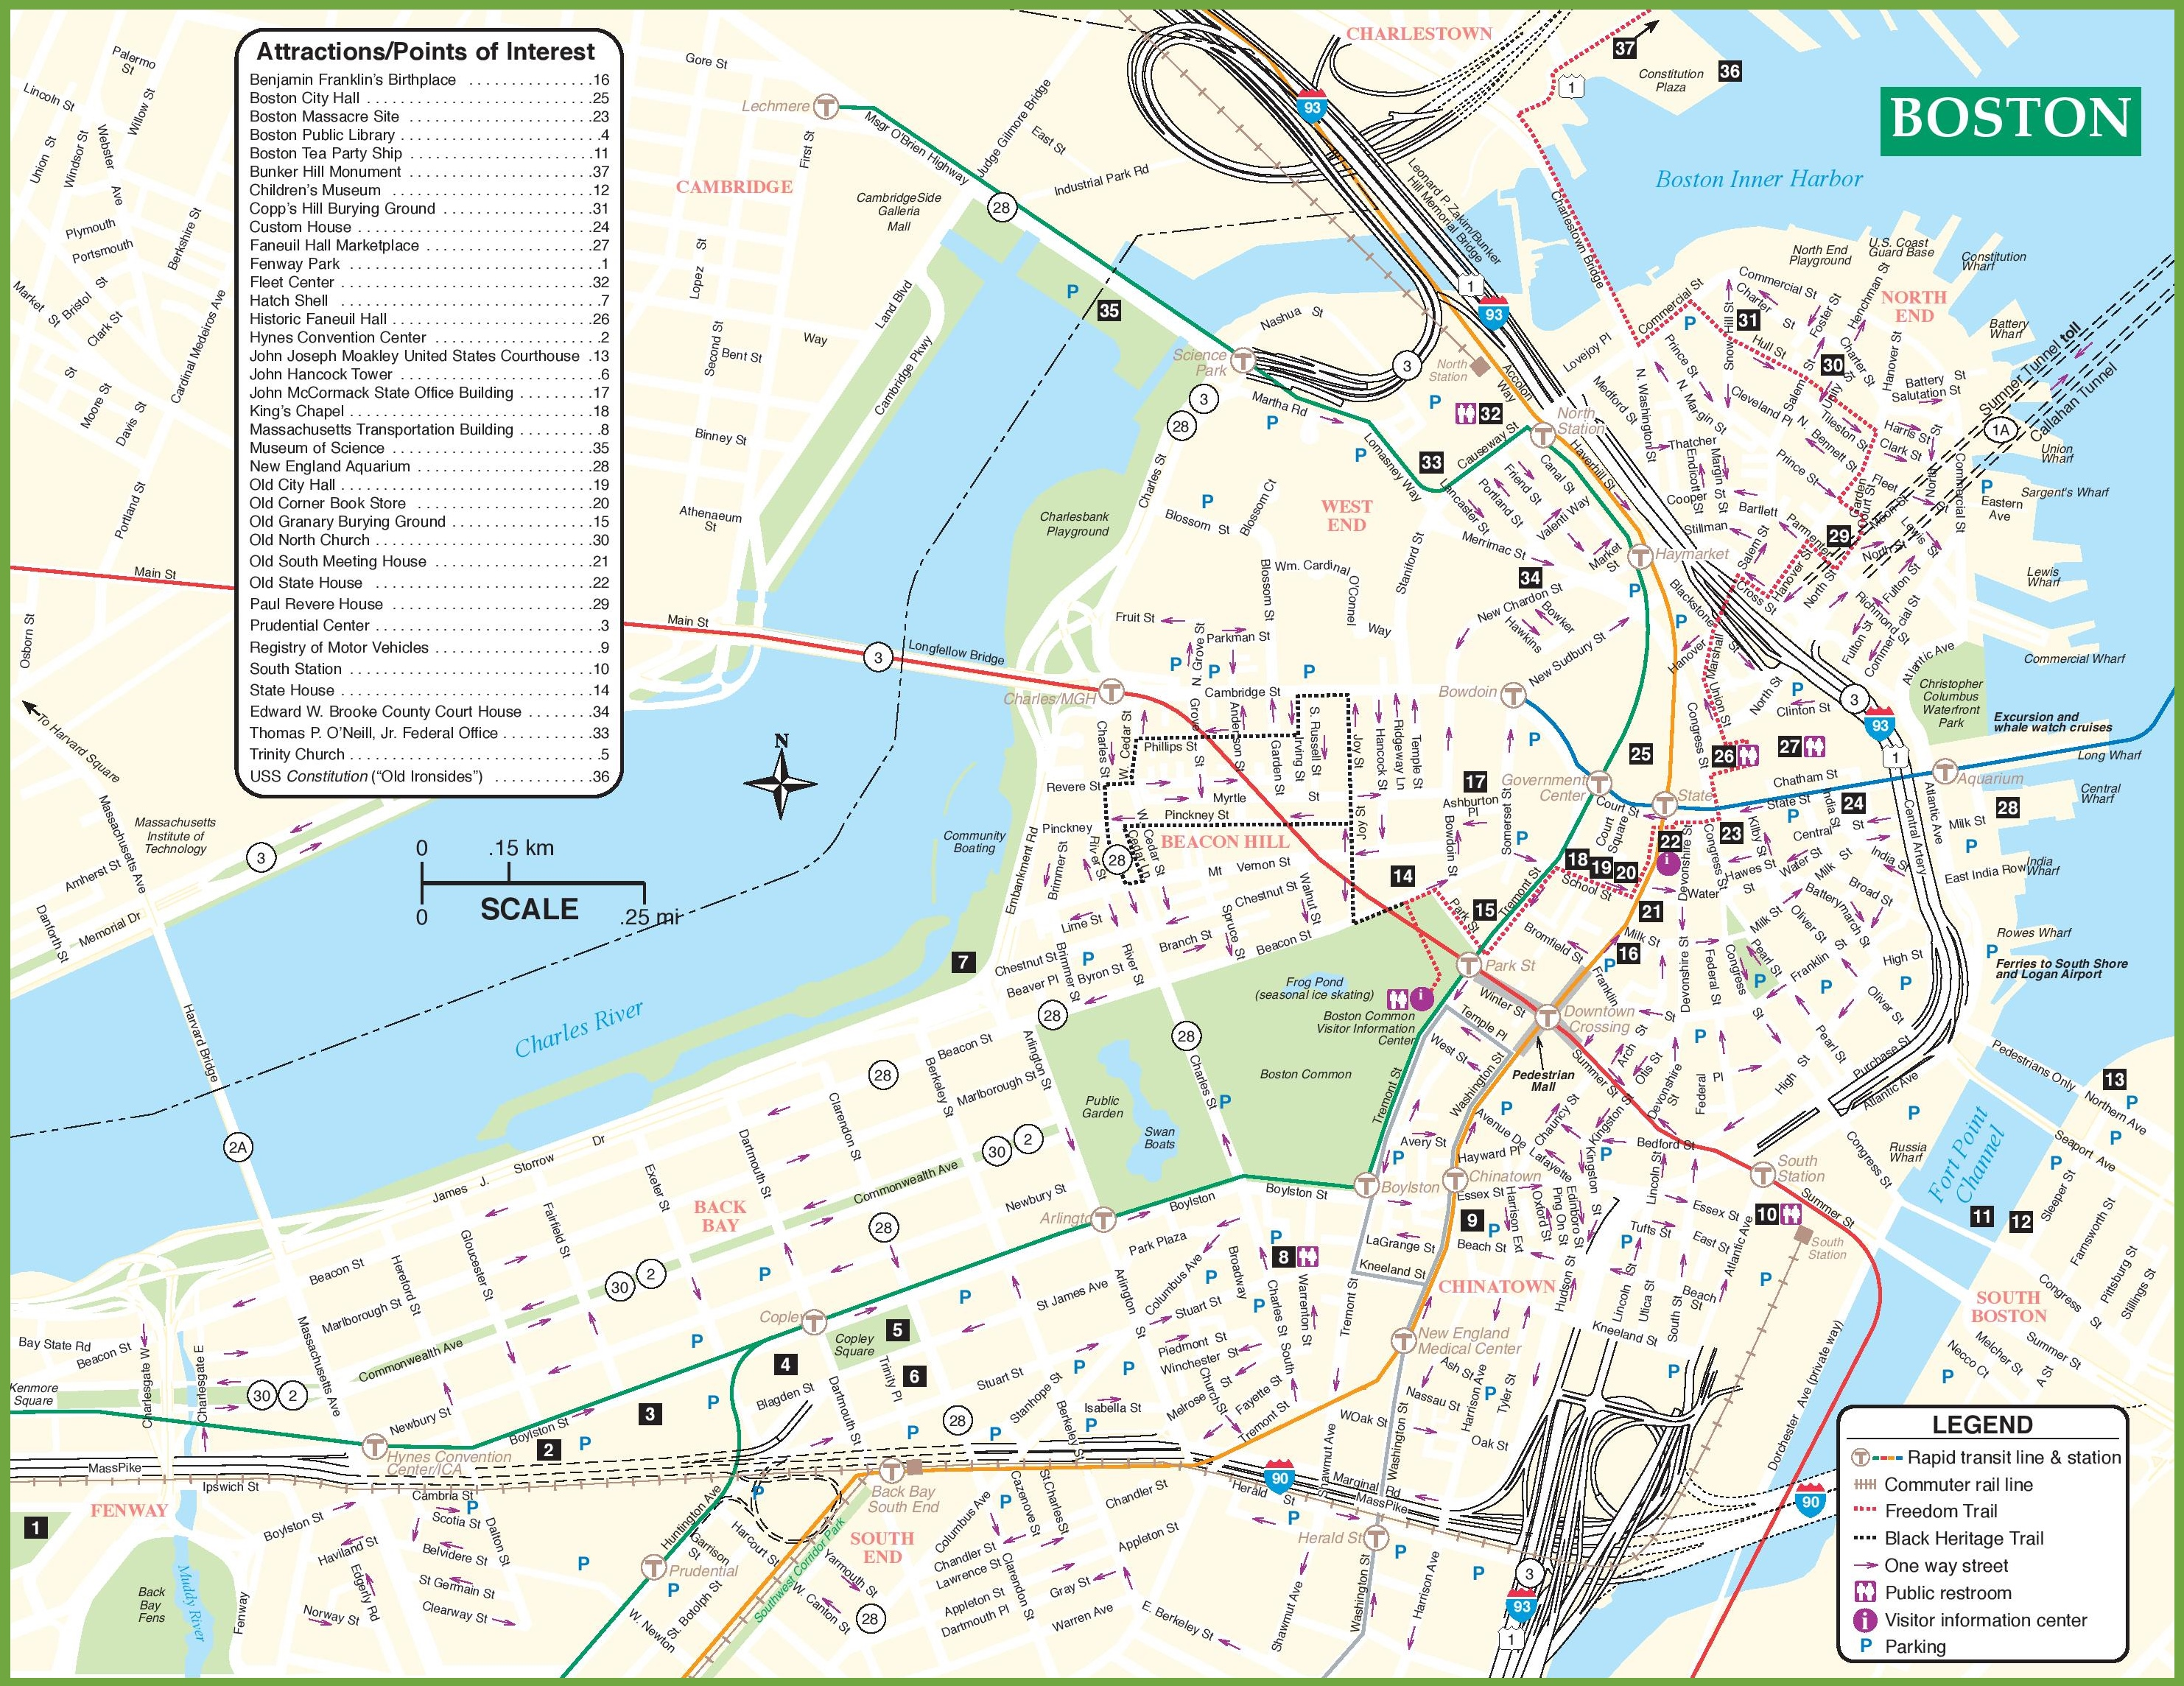 Boston tourist attractions map – Boston Tourist Attractions Map